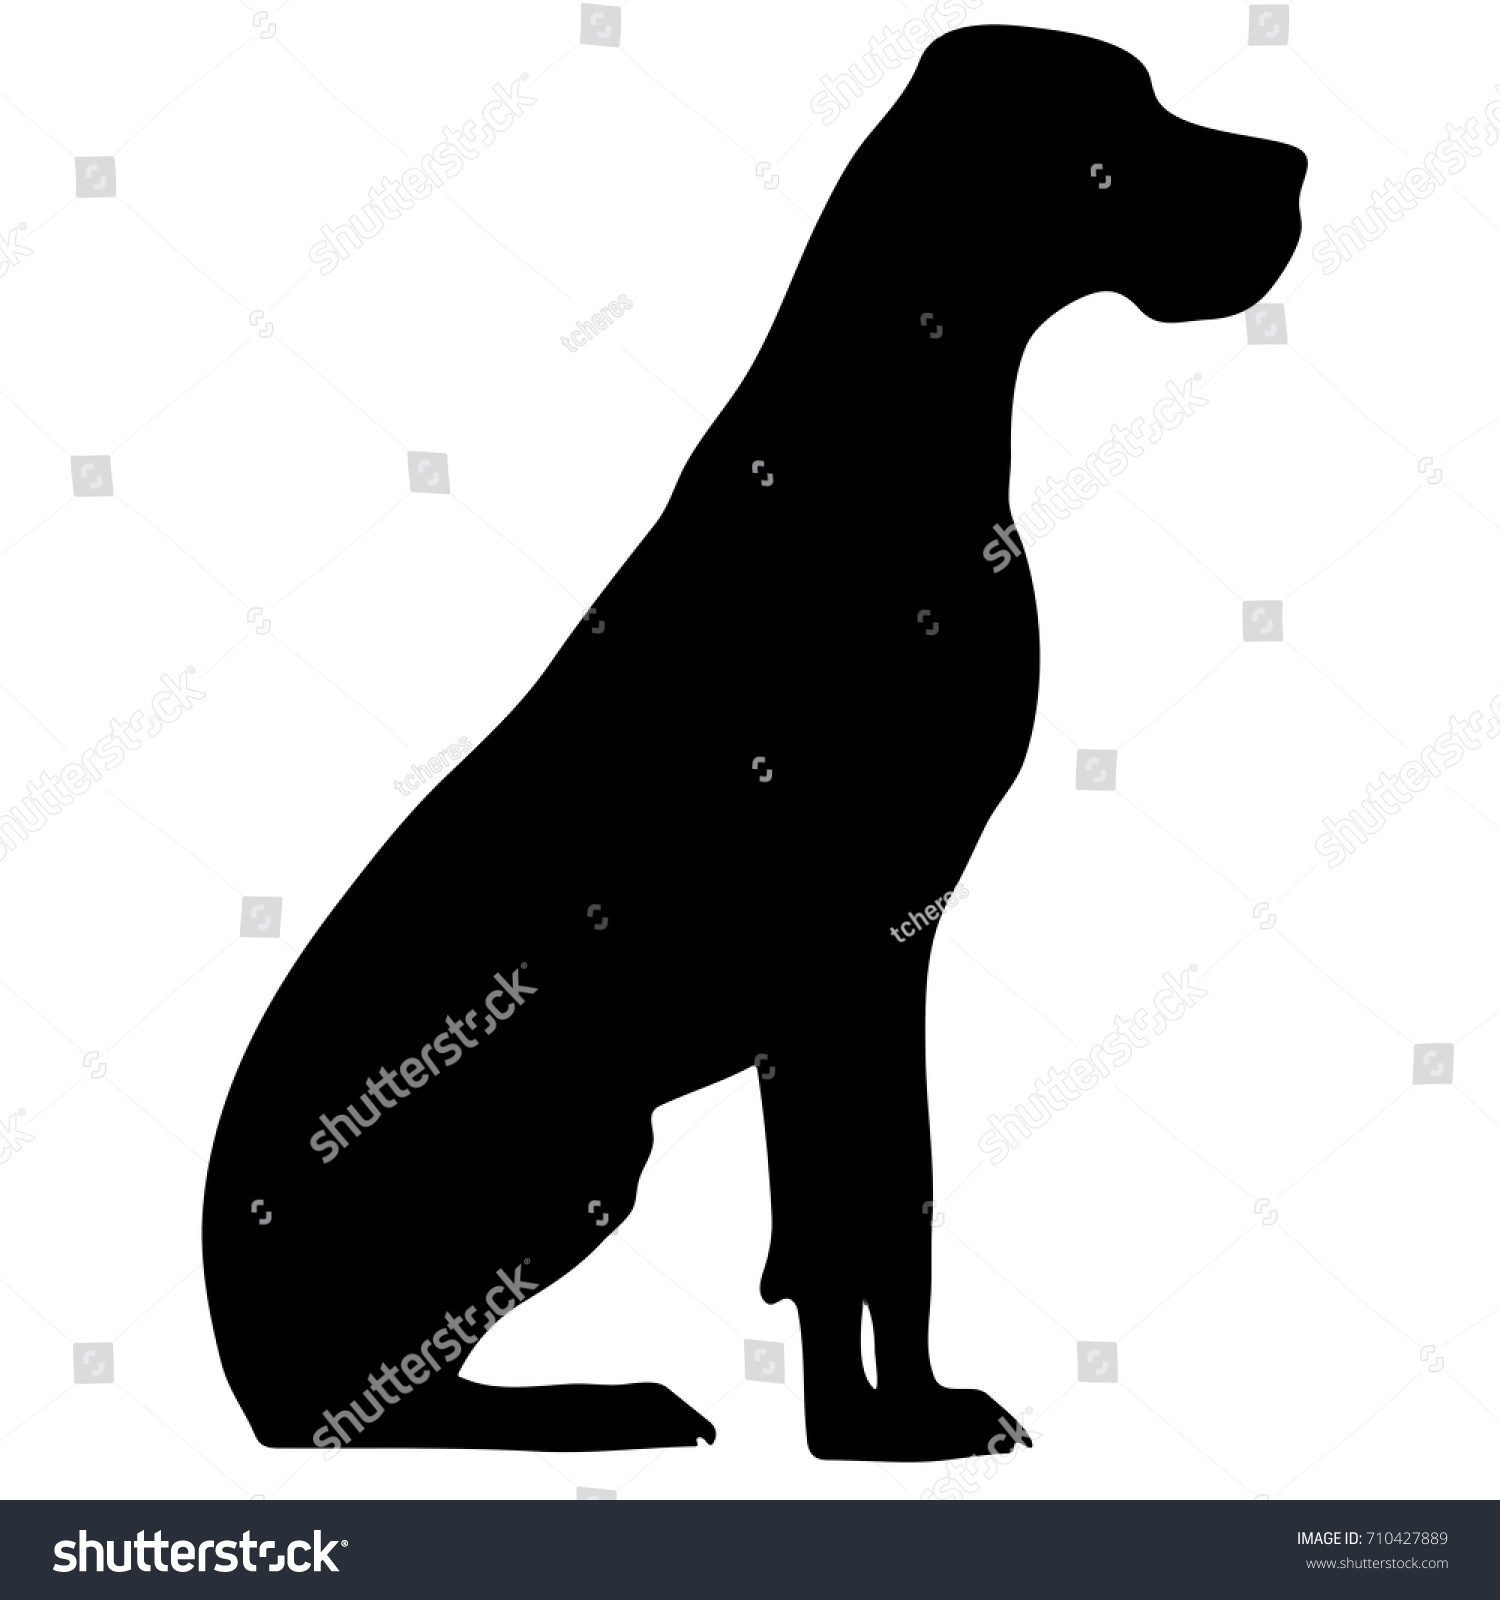 silhouette of a dogvector illustration of doberman pinscher bloodhound